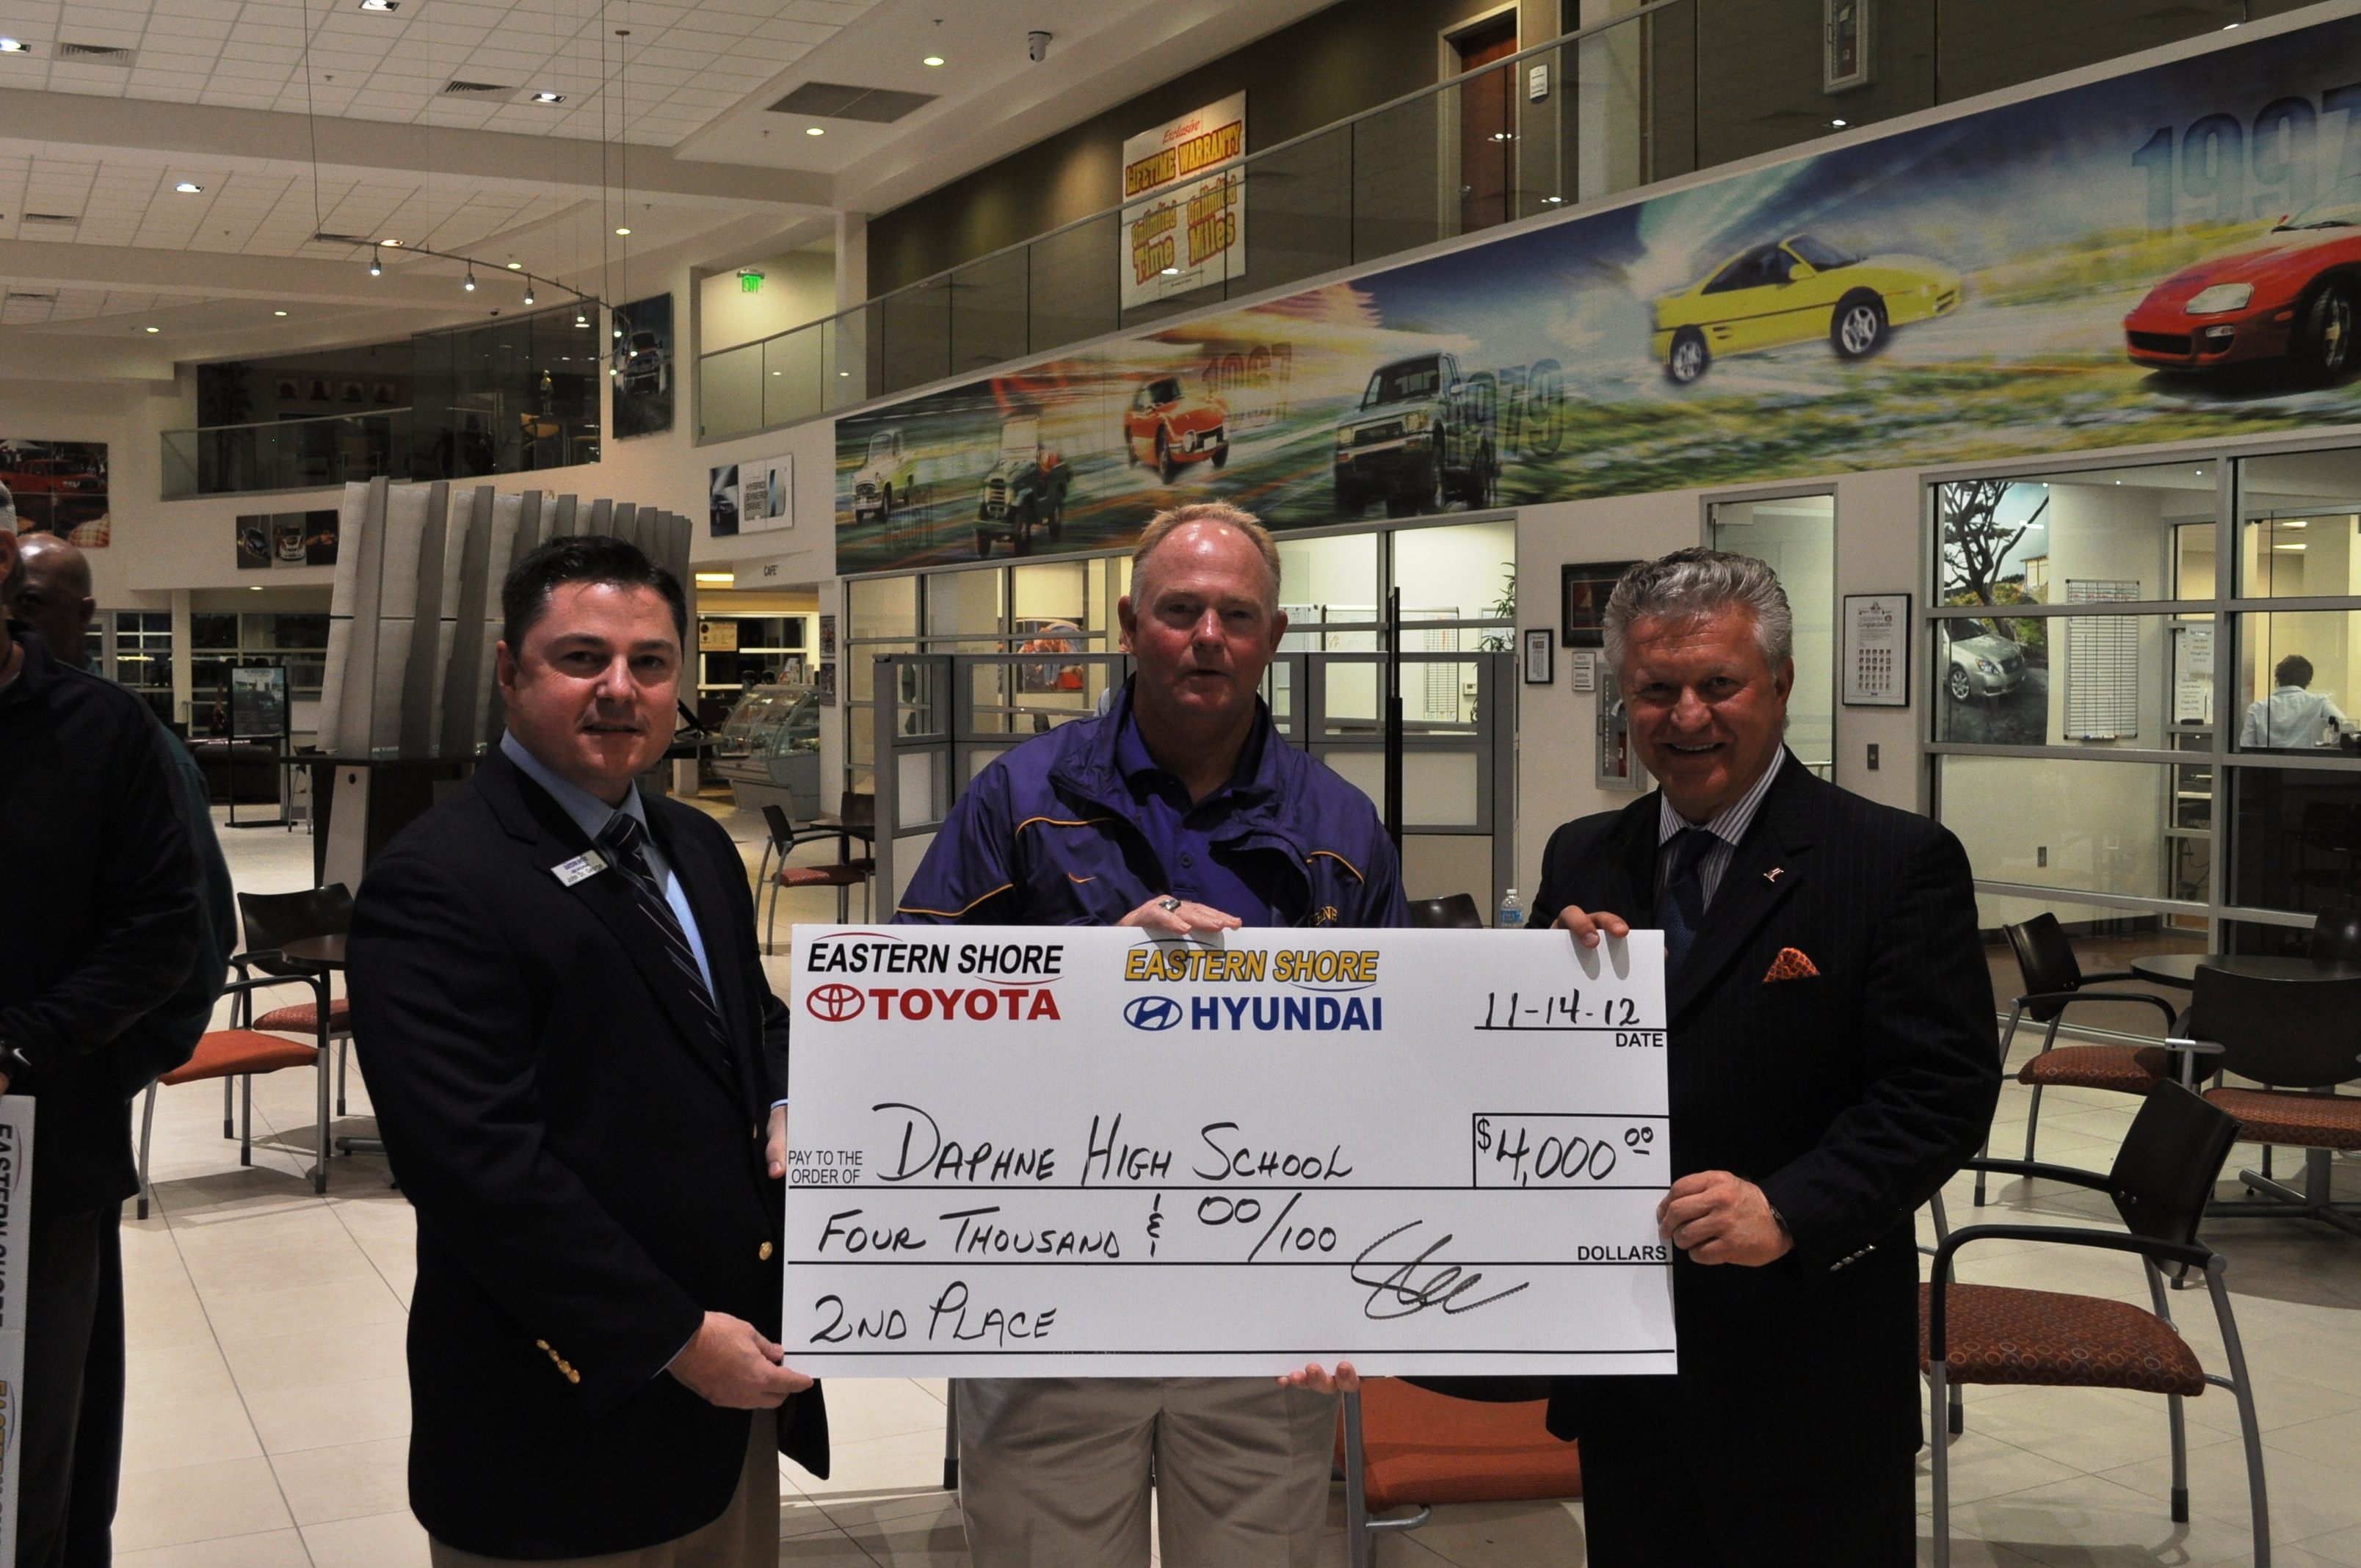 Eastern Shore Toyota image 2